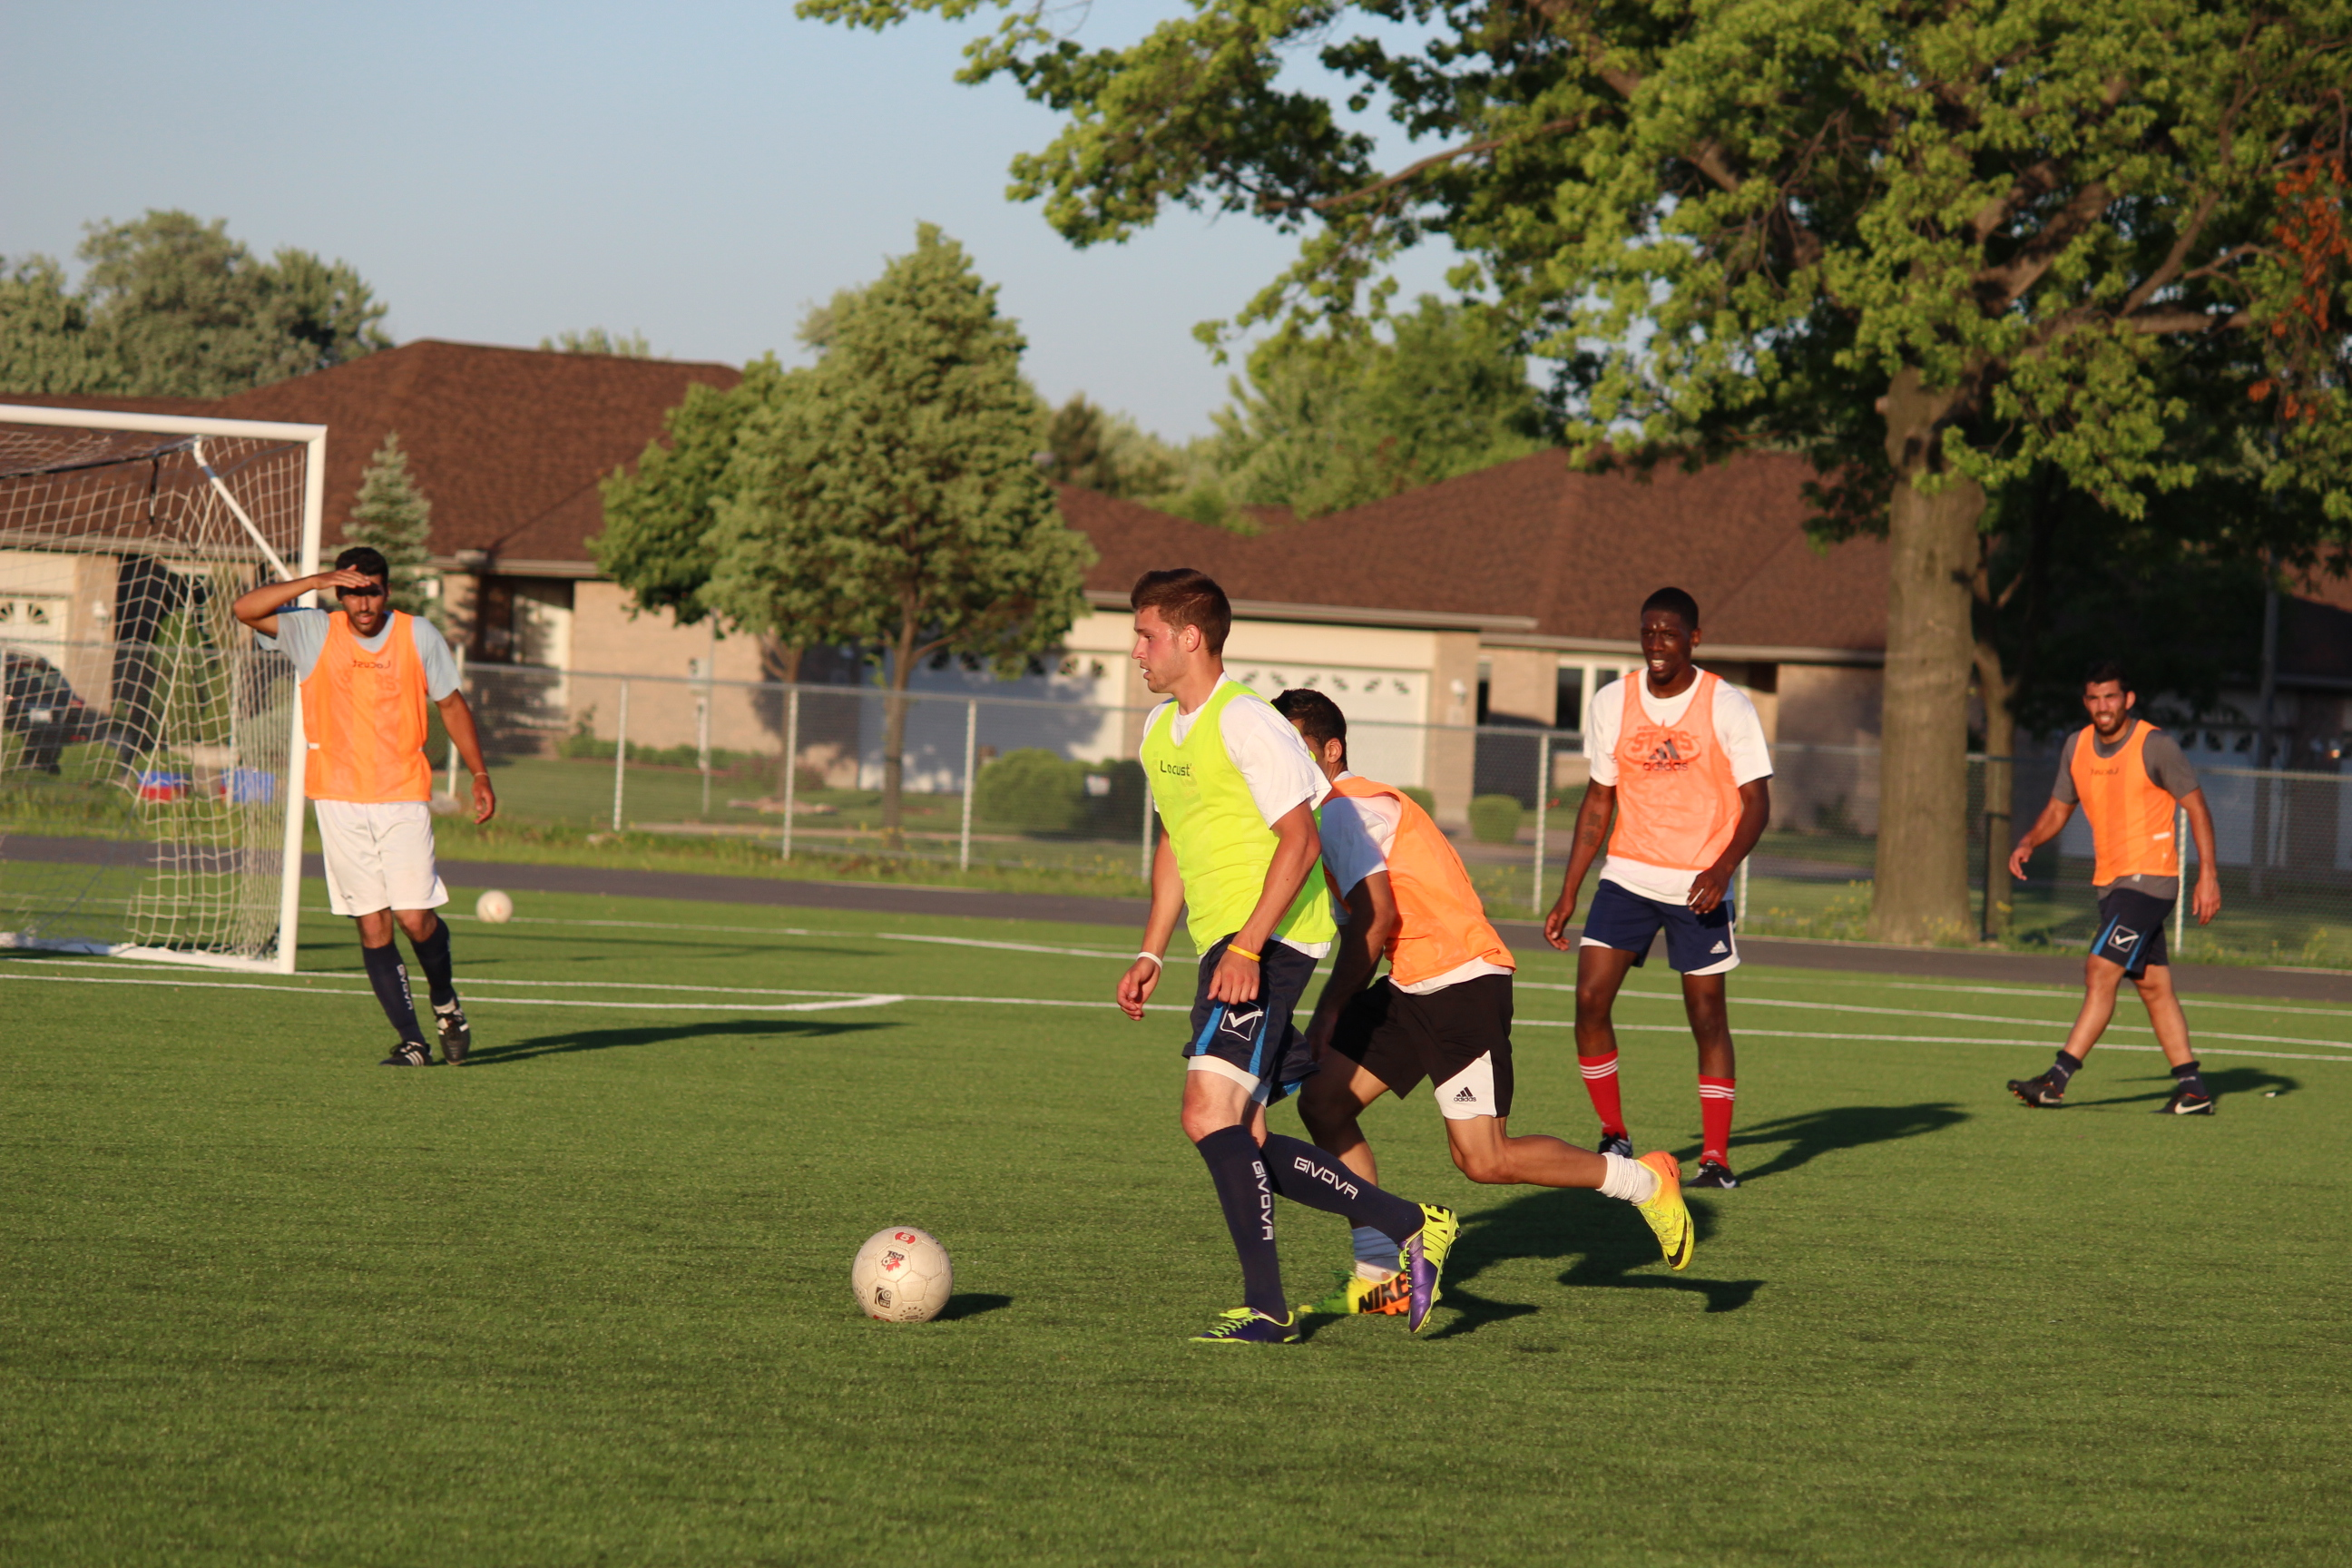 Windsor Stars striker Mike Pio takes the ball past a defender at a team practice at Academy Ste. Cecile in Windsor's west end on June 3, 2014. (Photo by Ricardo Veneza)